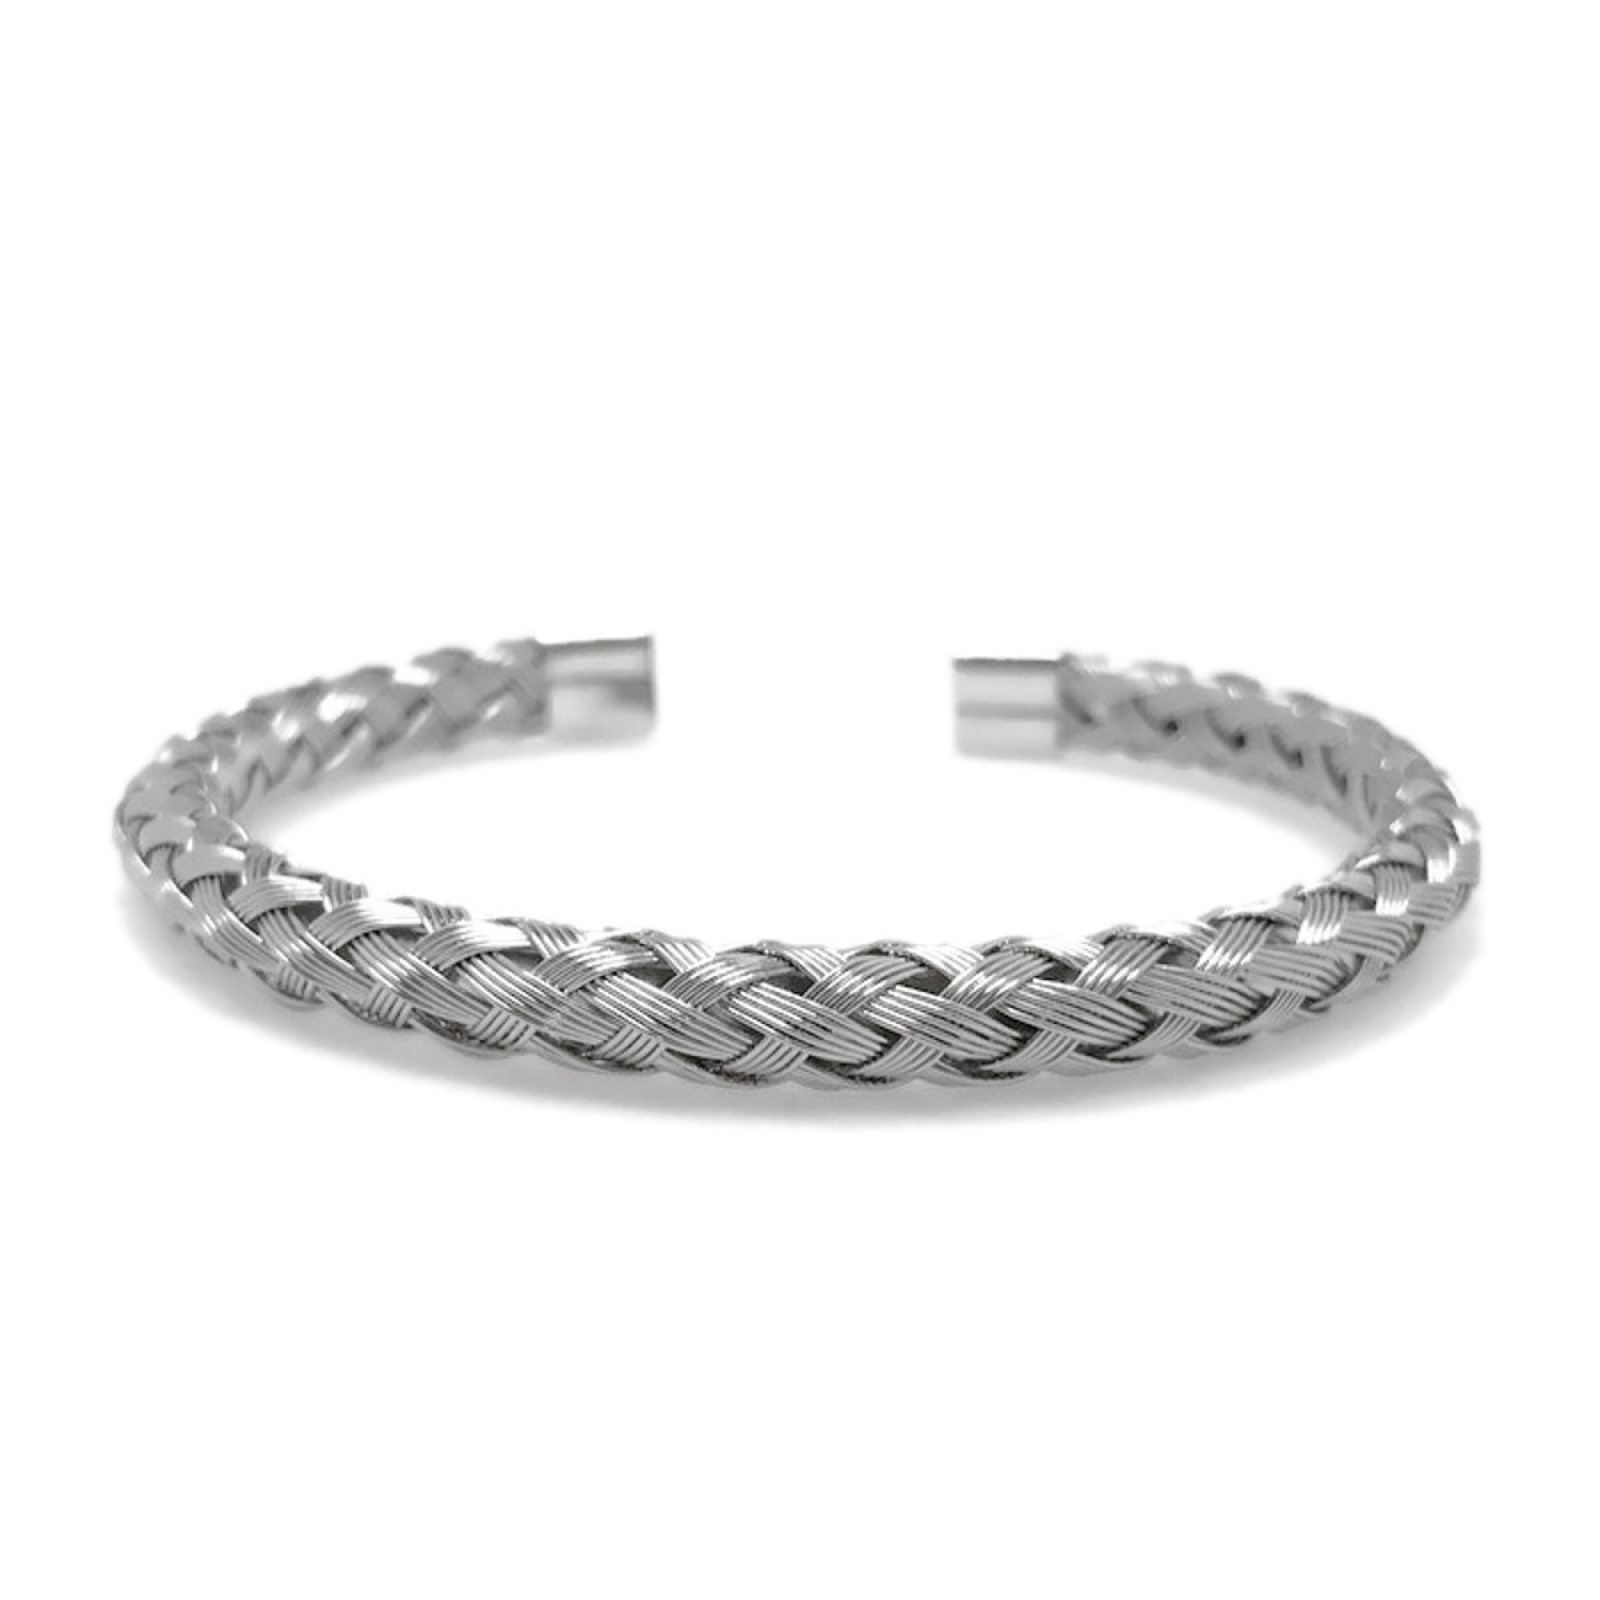 steel bangle cuff loralyn wire unisex stainless round bangles jewelry product for girls silver teen gifts large men braid braided love neverending womens metal woven bracelet unique women